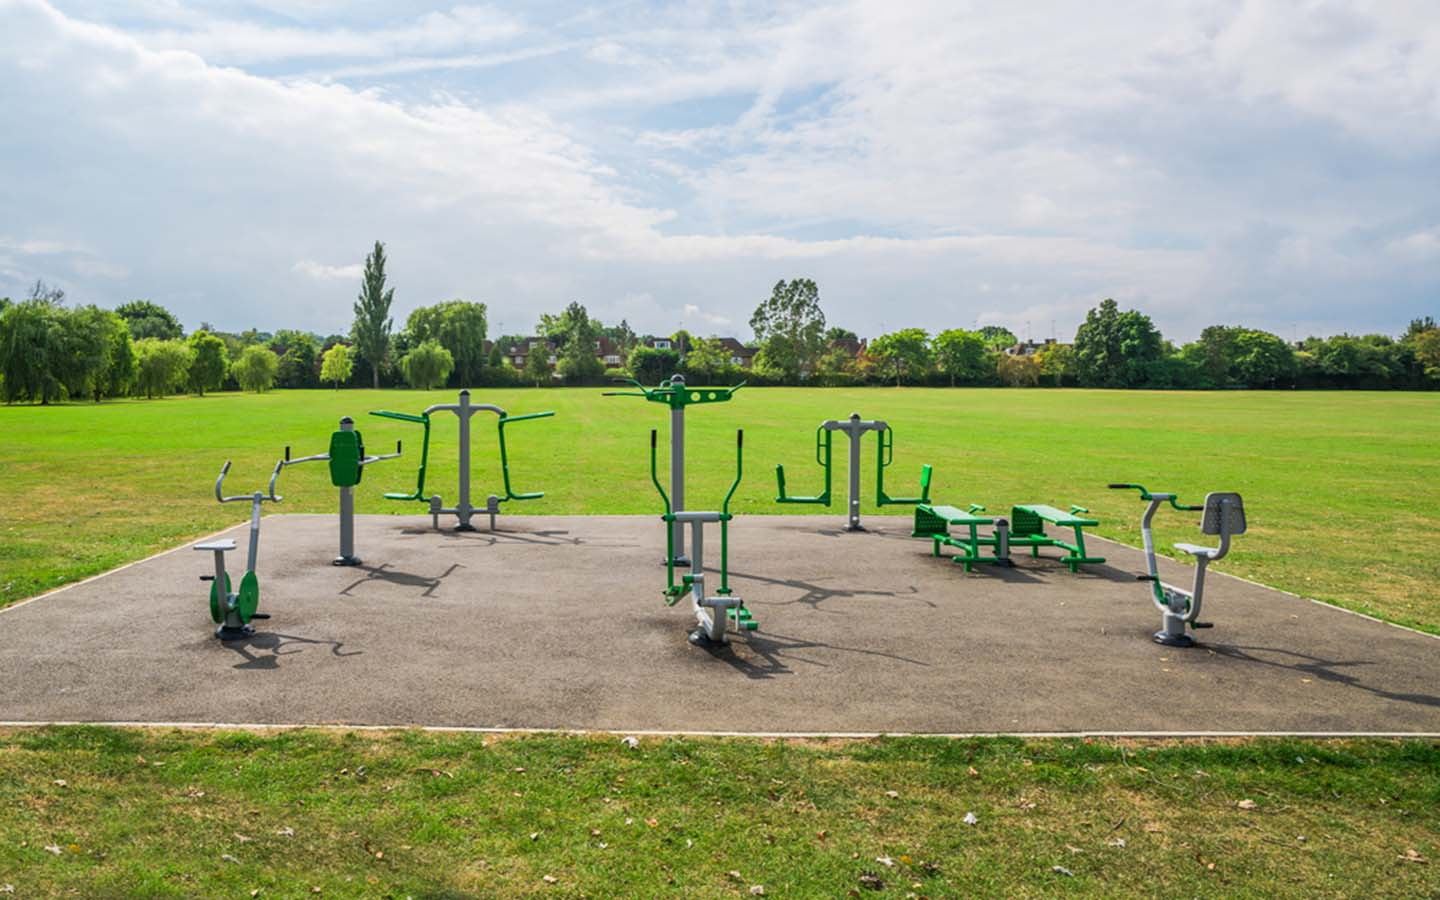 A view of an outdoor gym